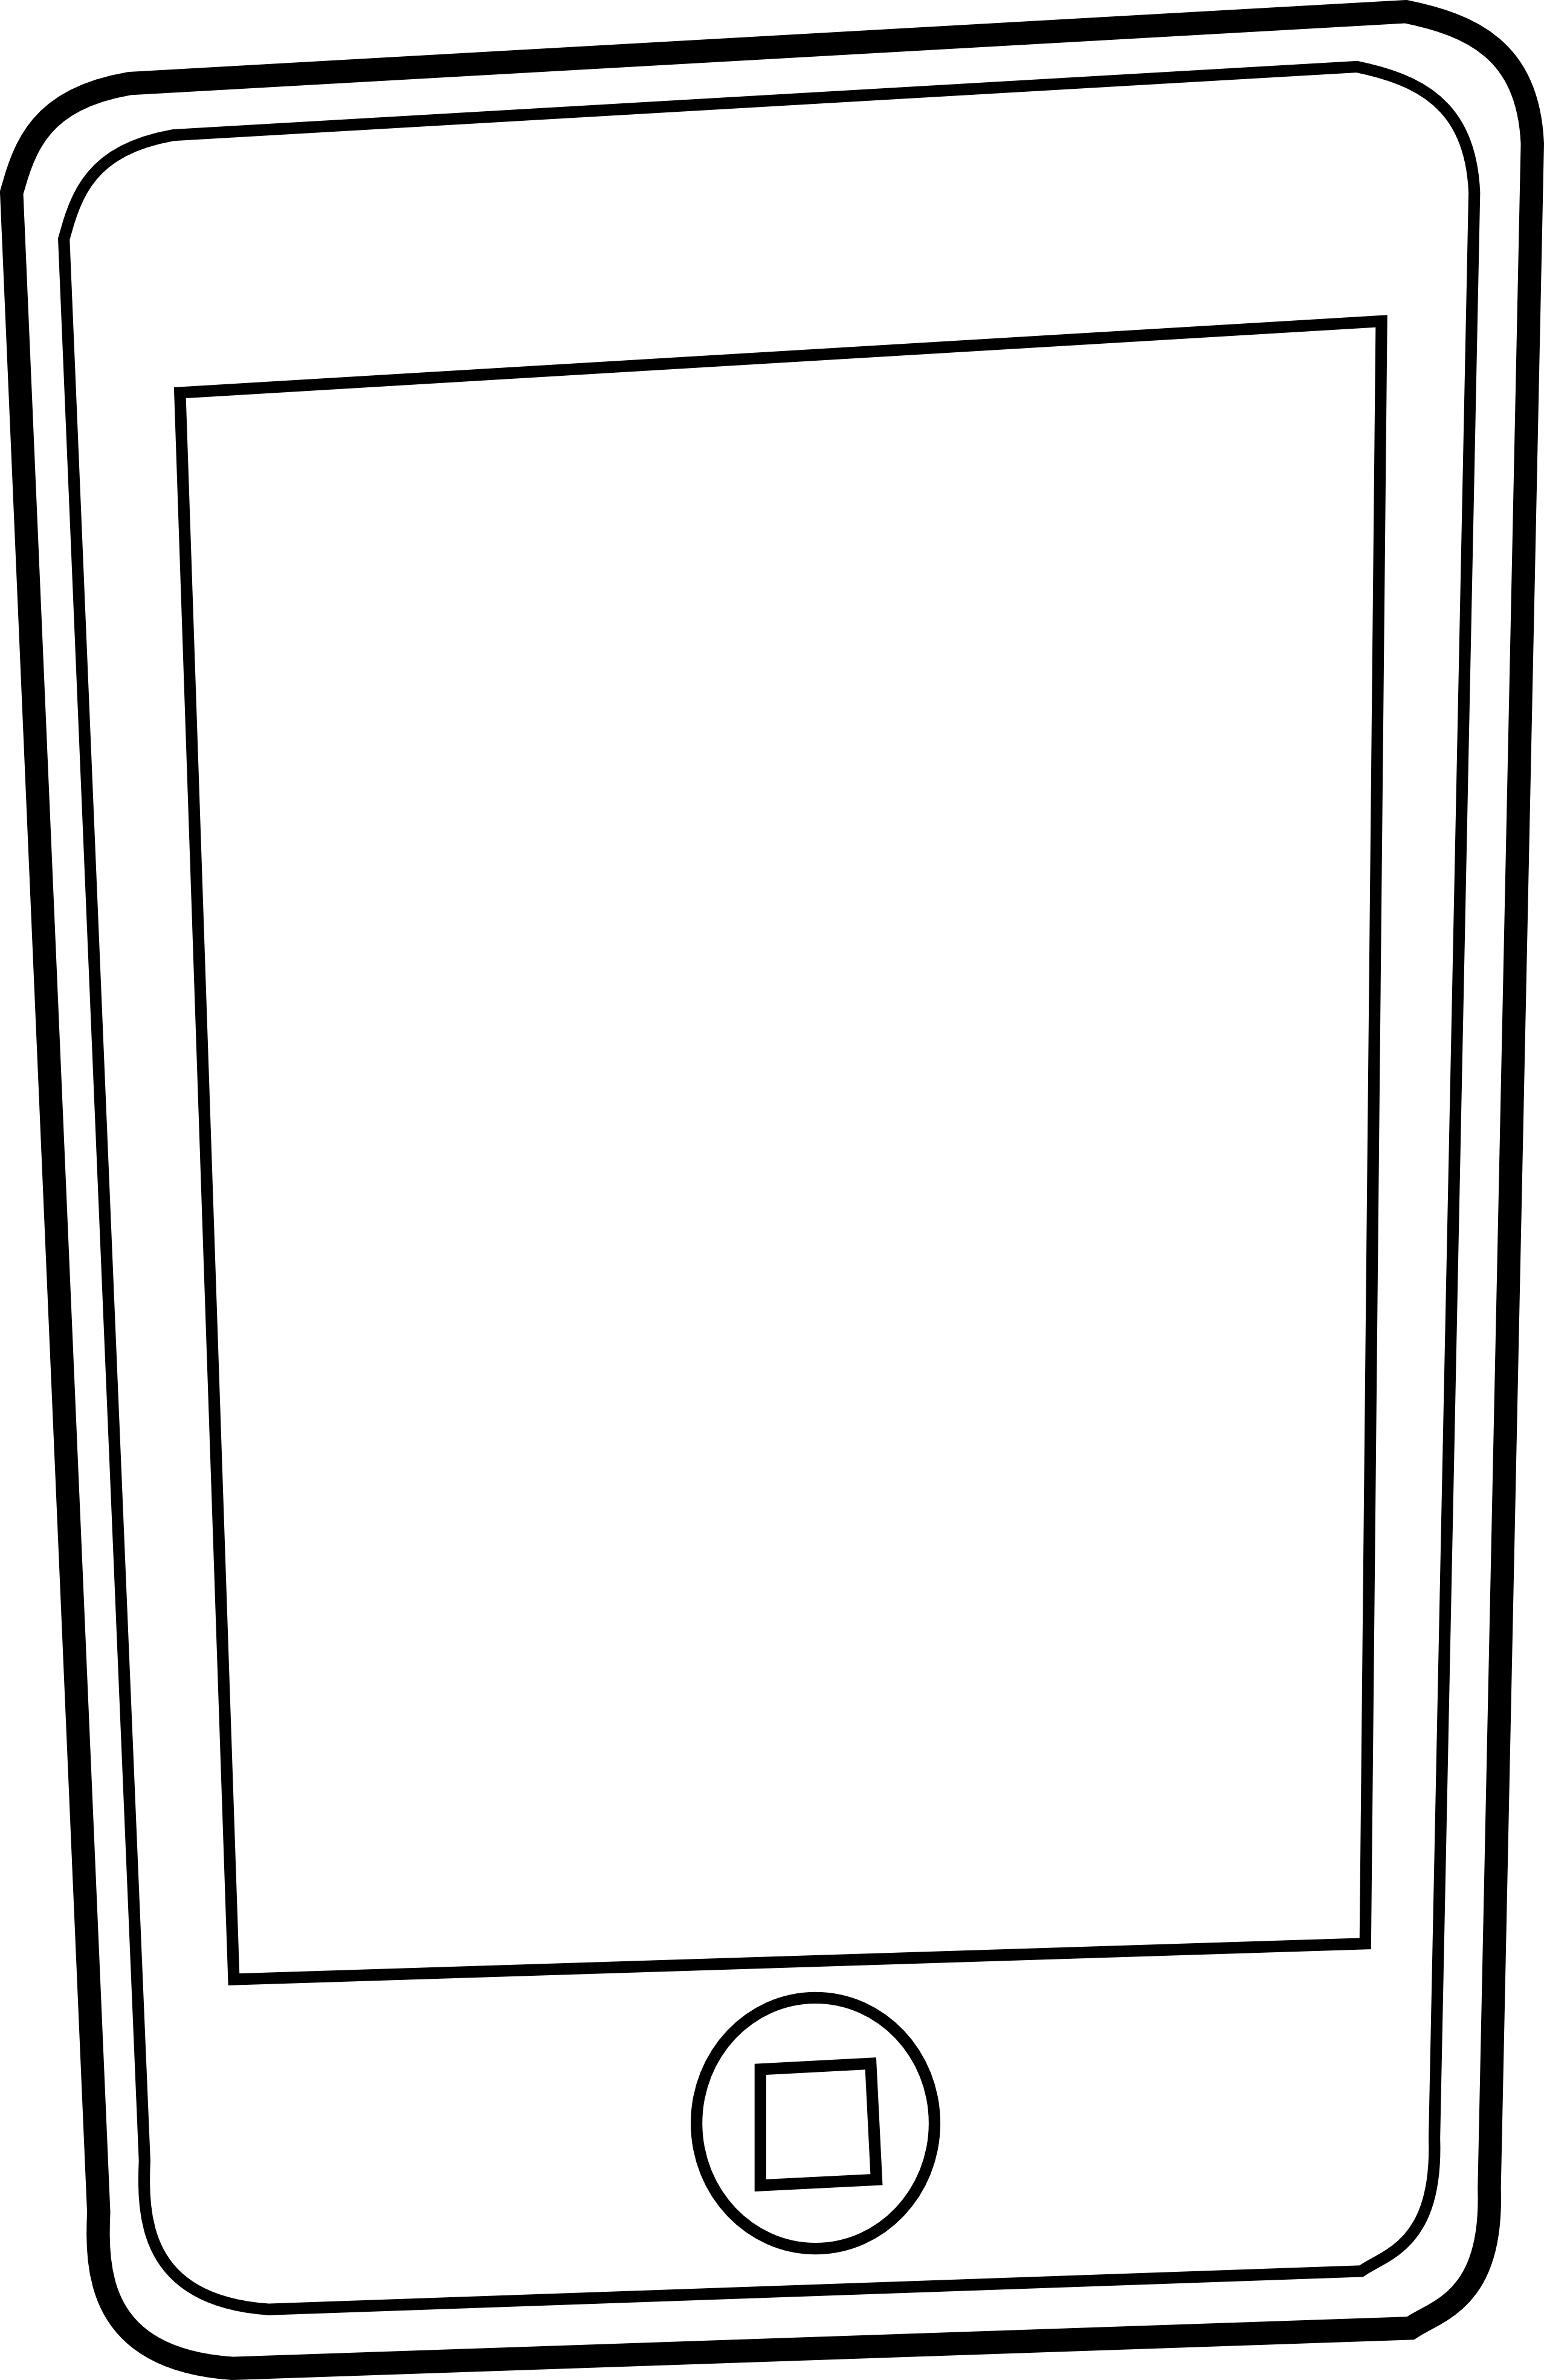 Smartphone clipart black and white clipart library stock Free Smartphone Images Free, Download Free Clip Art, Free ... clipart library stock